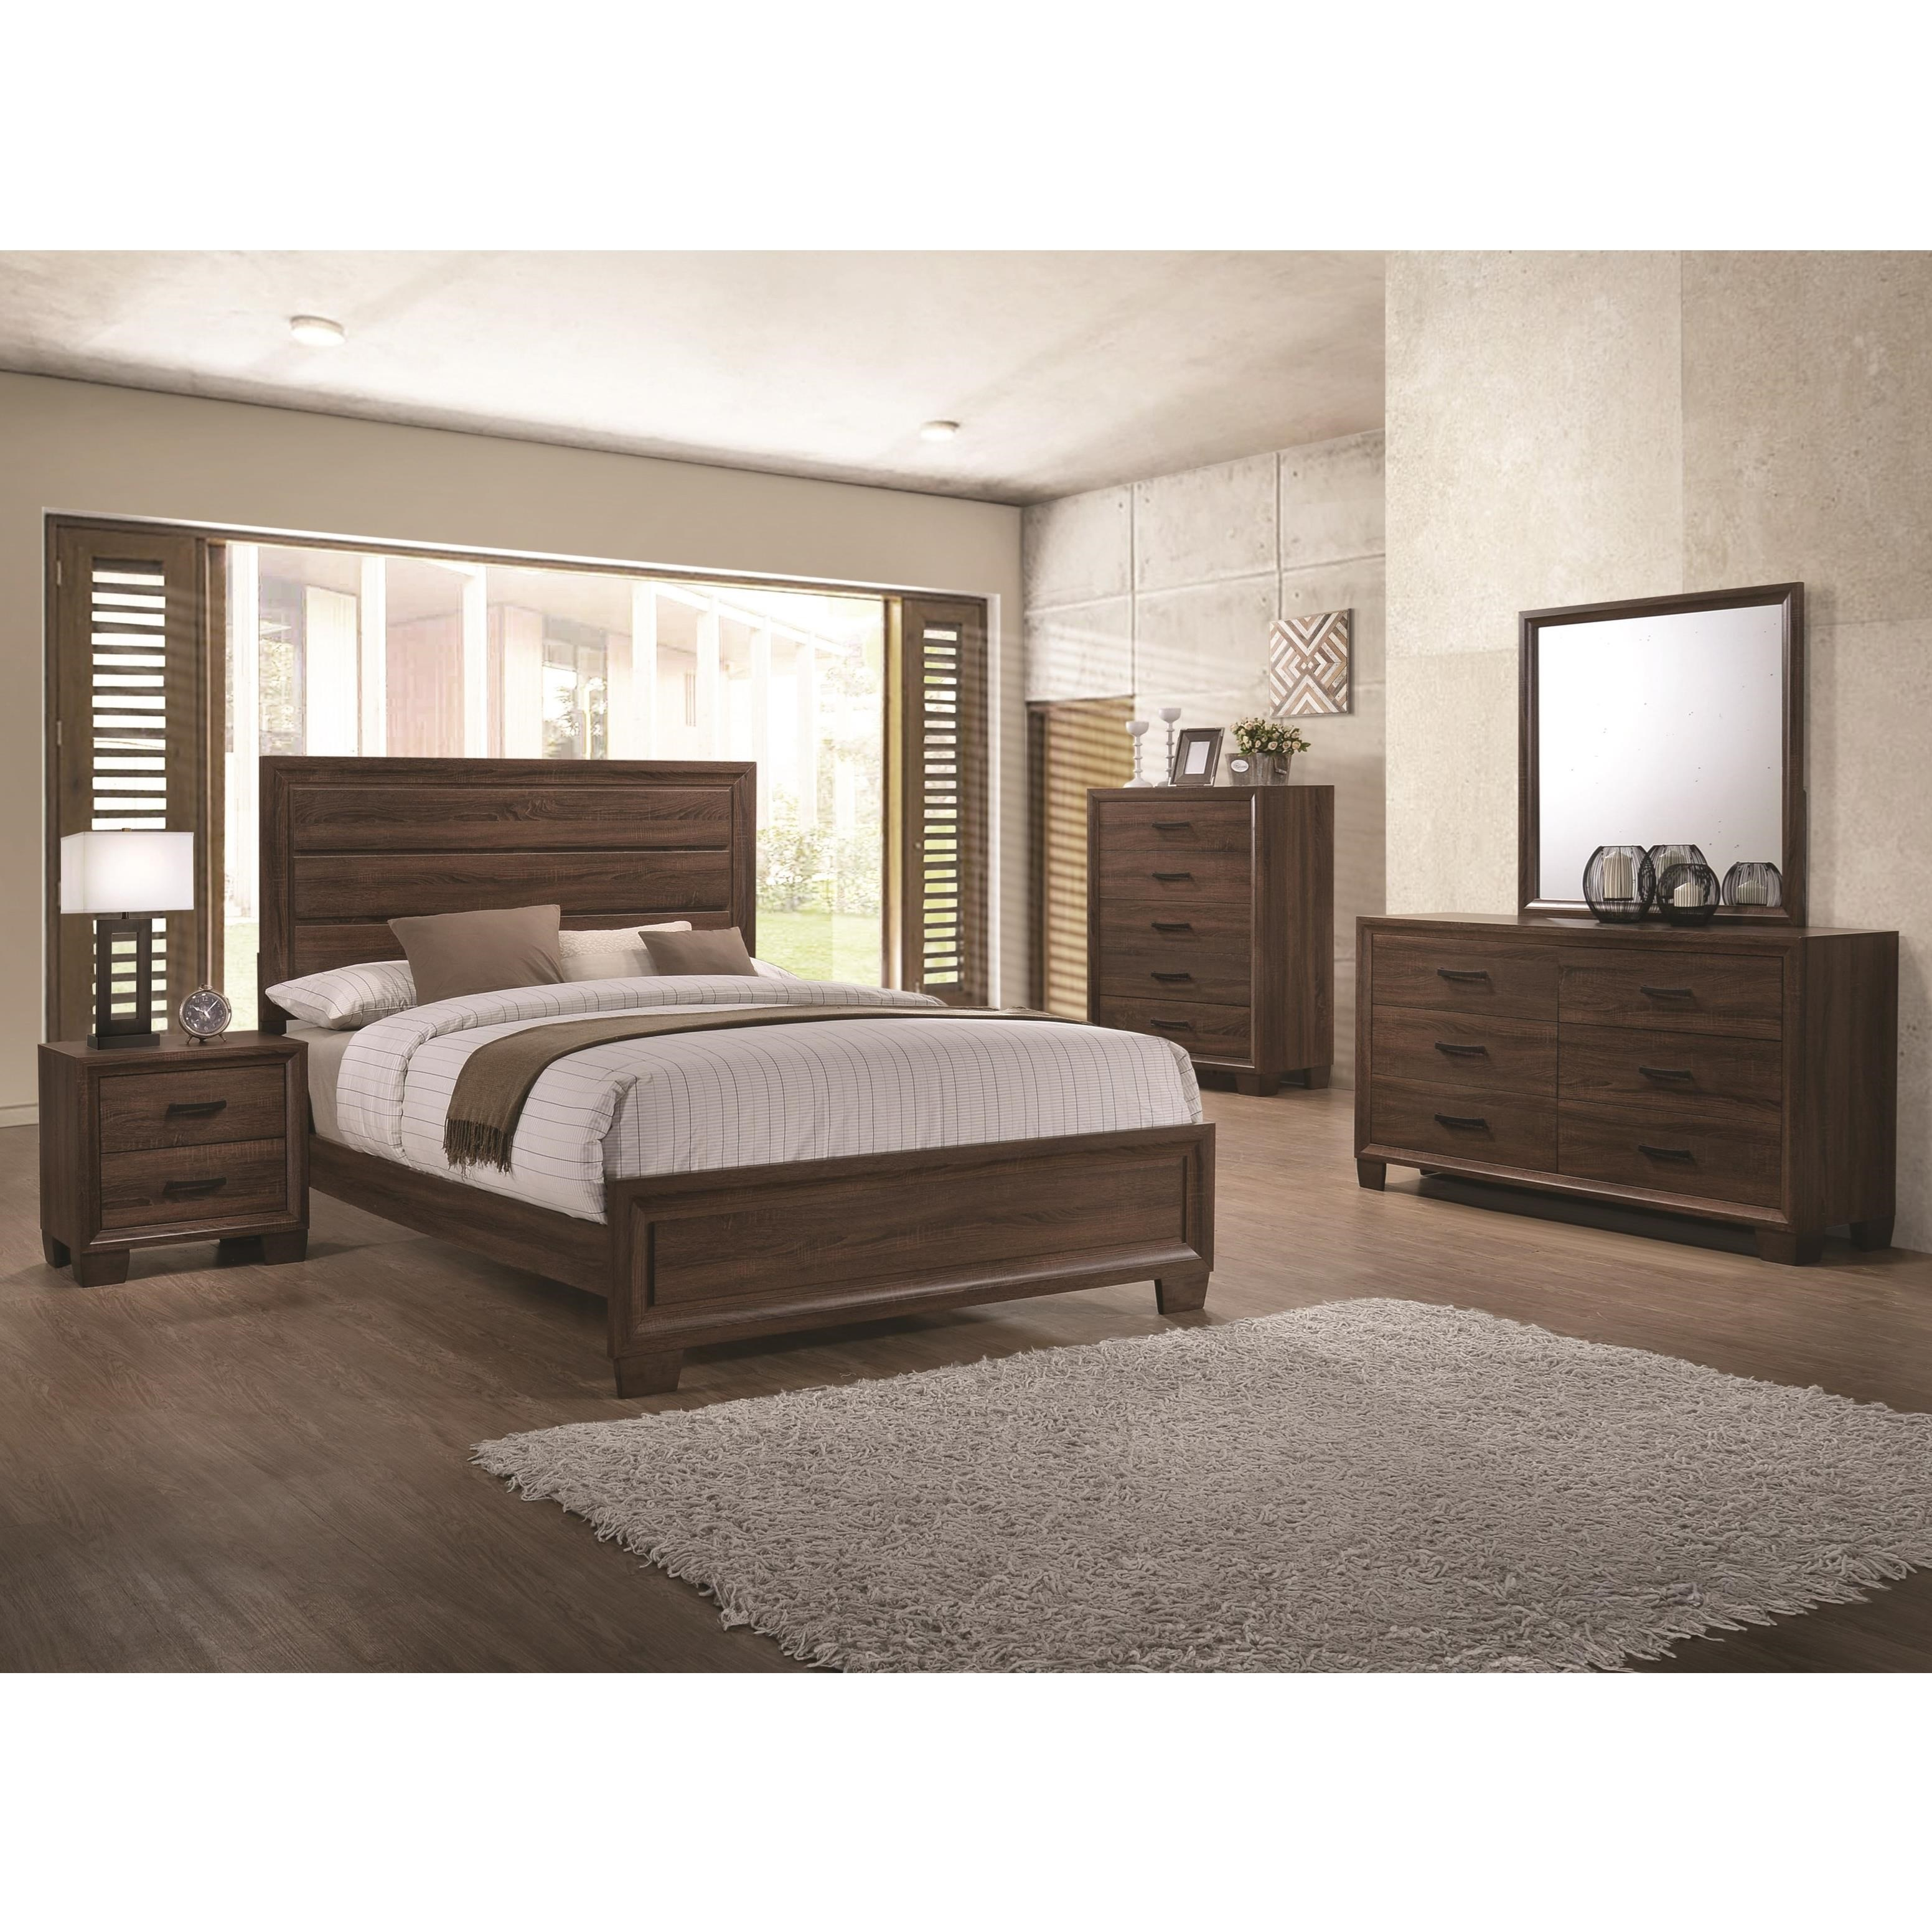 Brandon King Bedroom Group by Coaster at Northeast Factory Direct